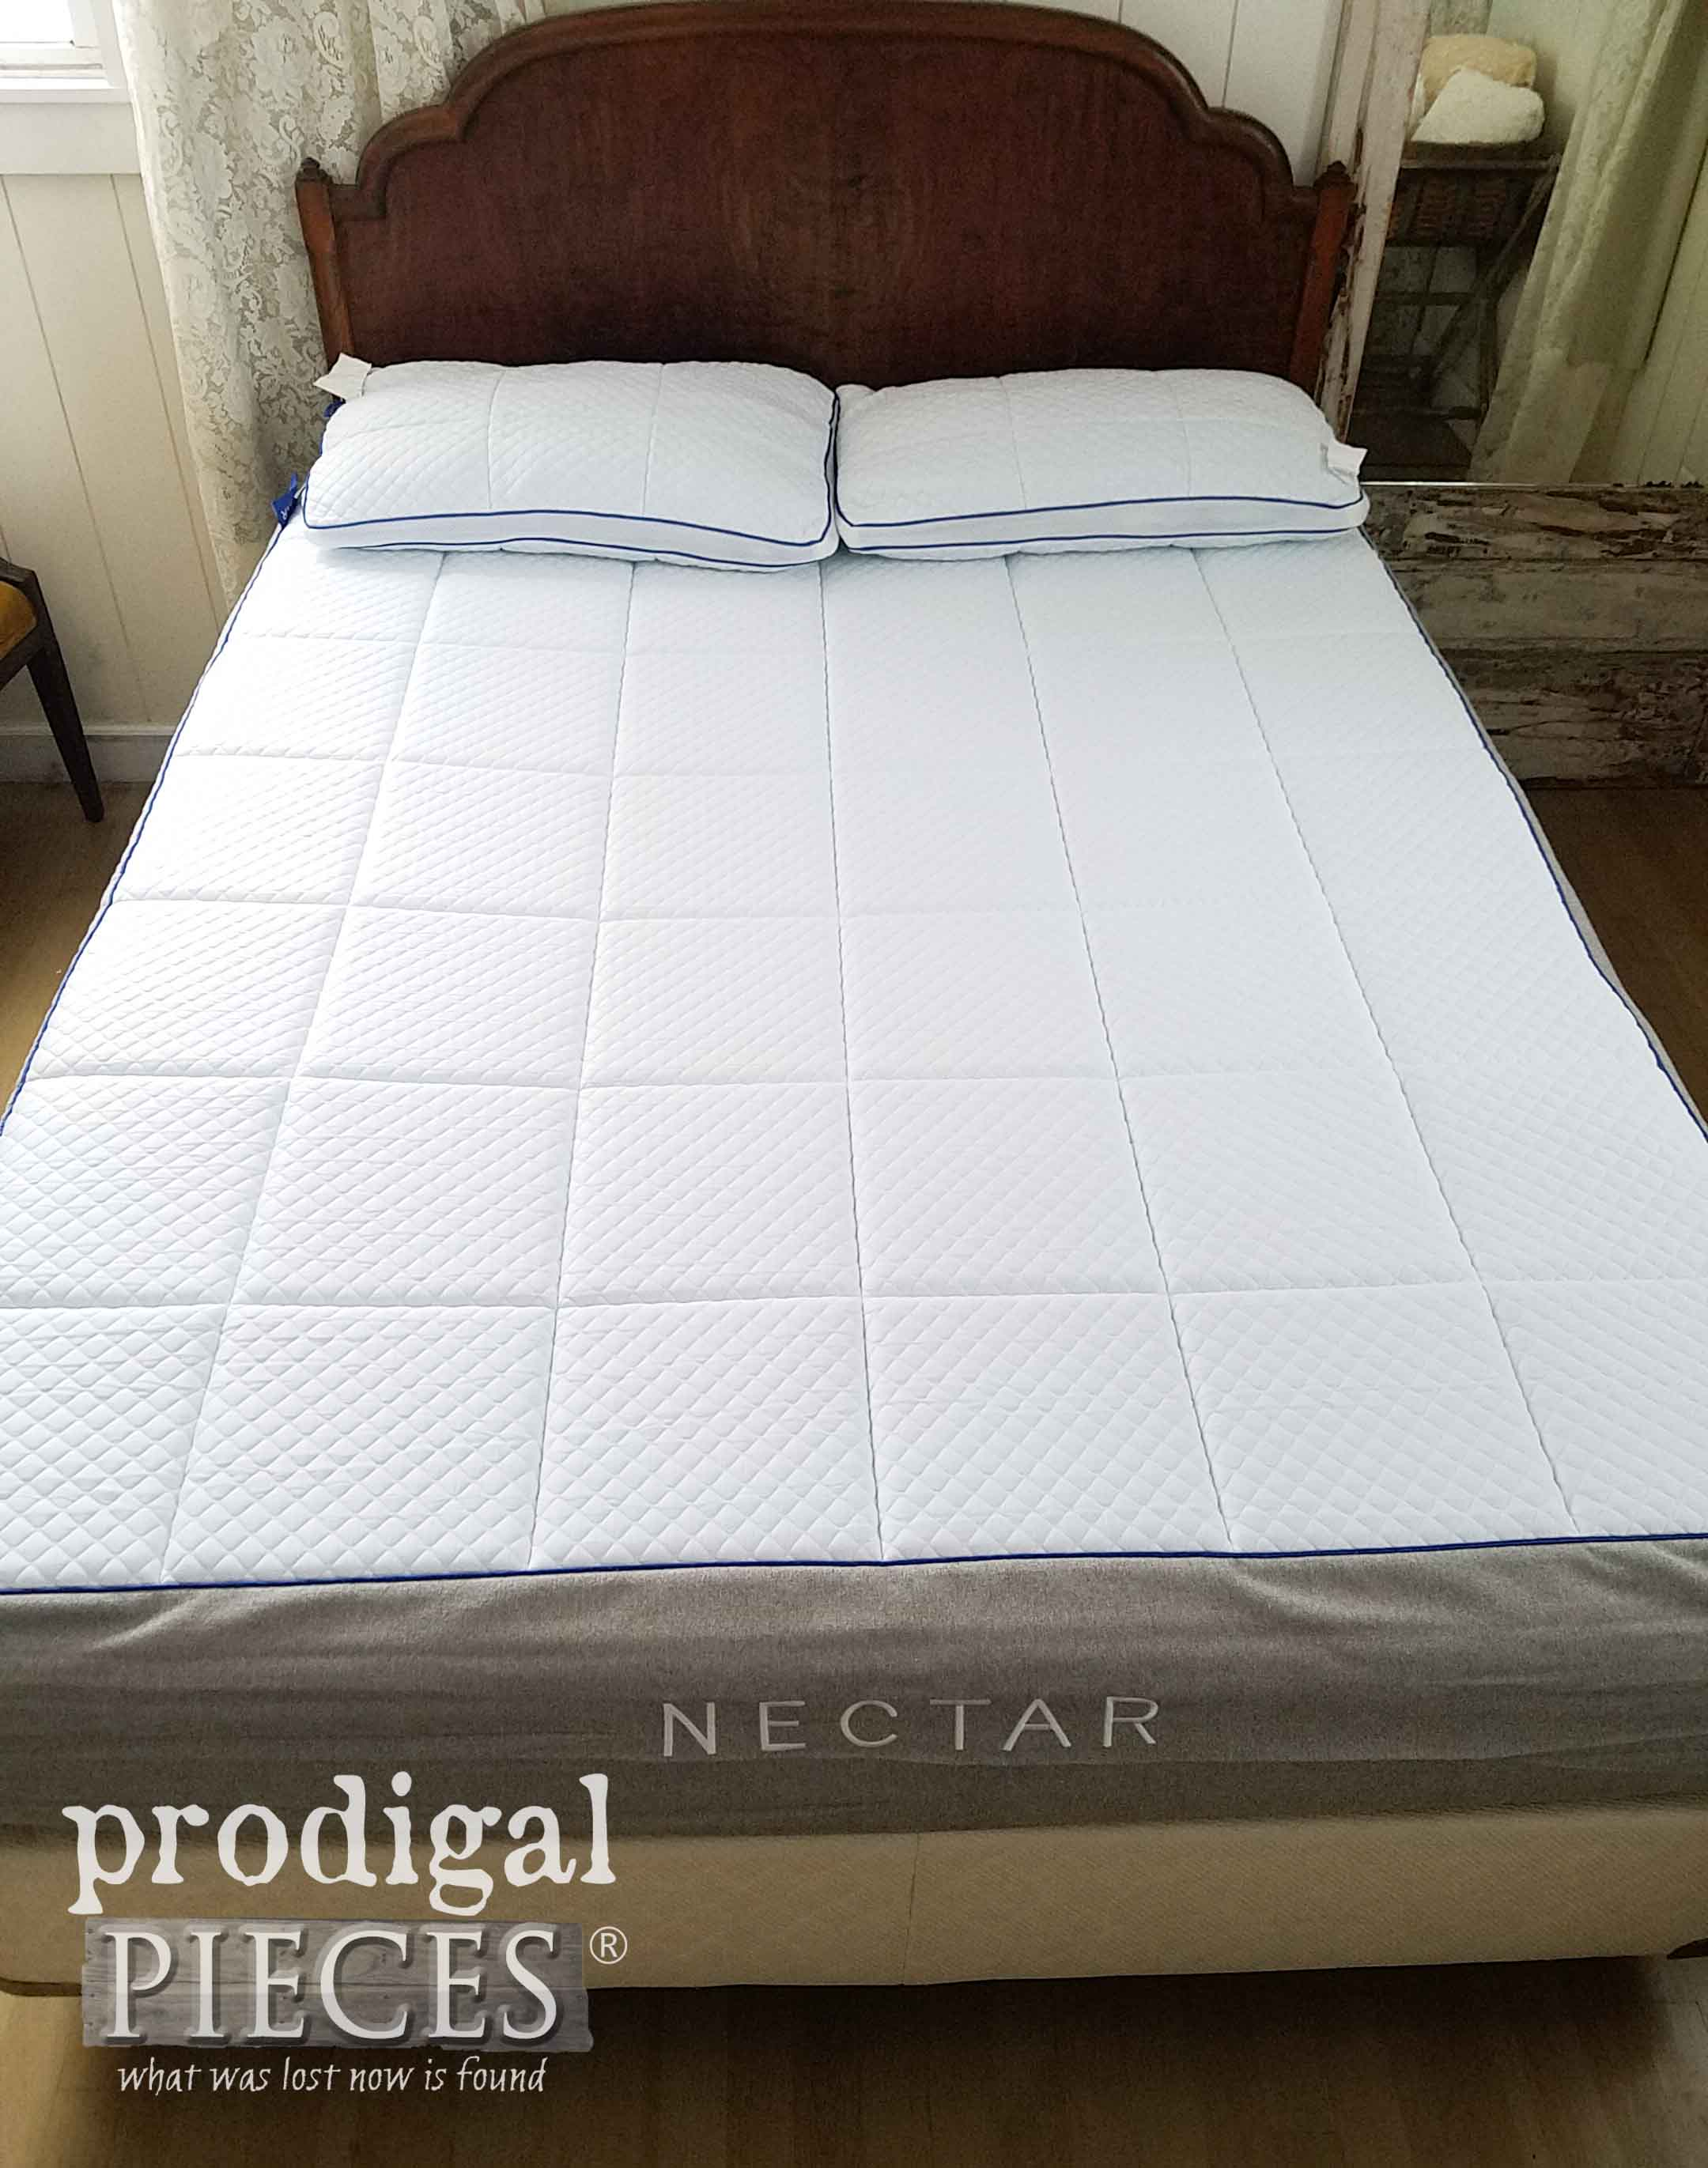 Queen Size NECTAR Mattress Review | prodigalpieces.com